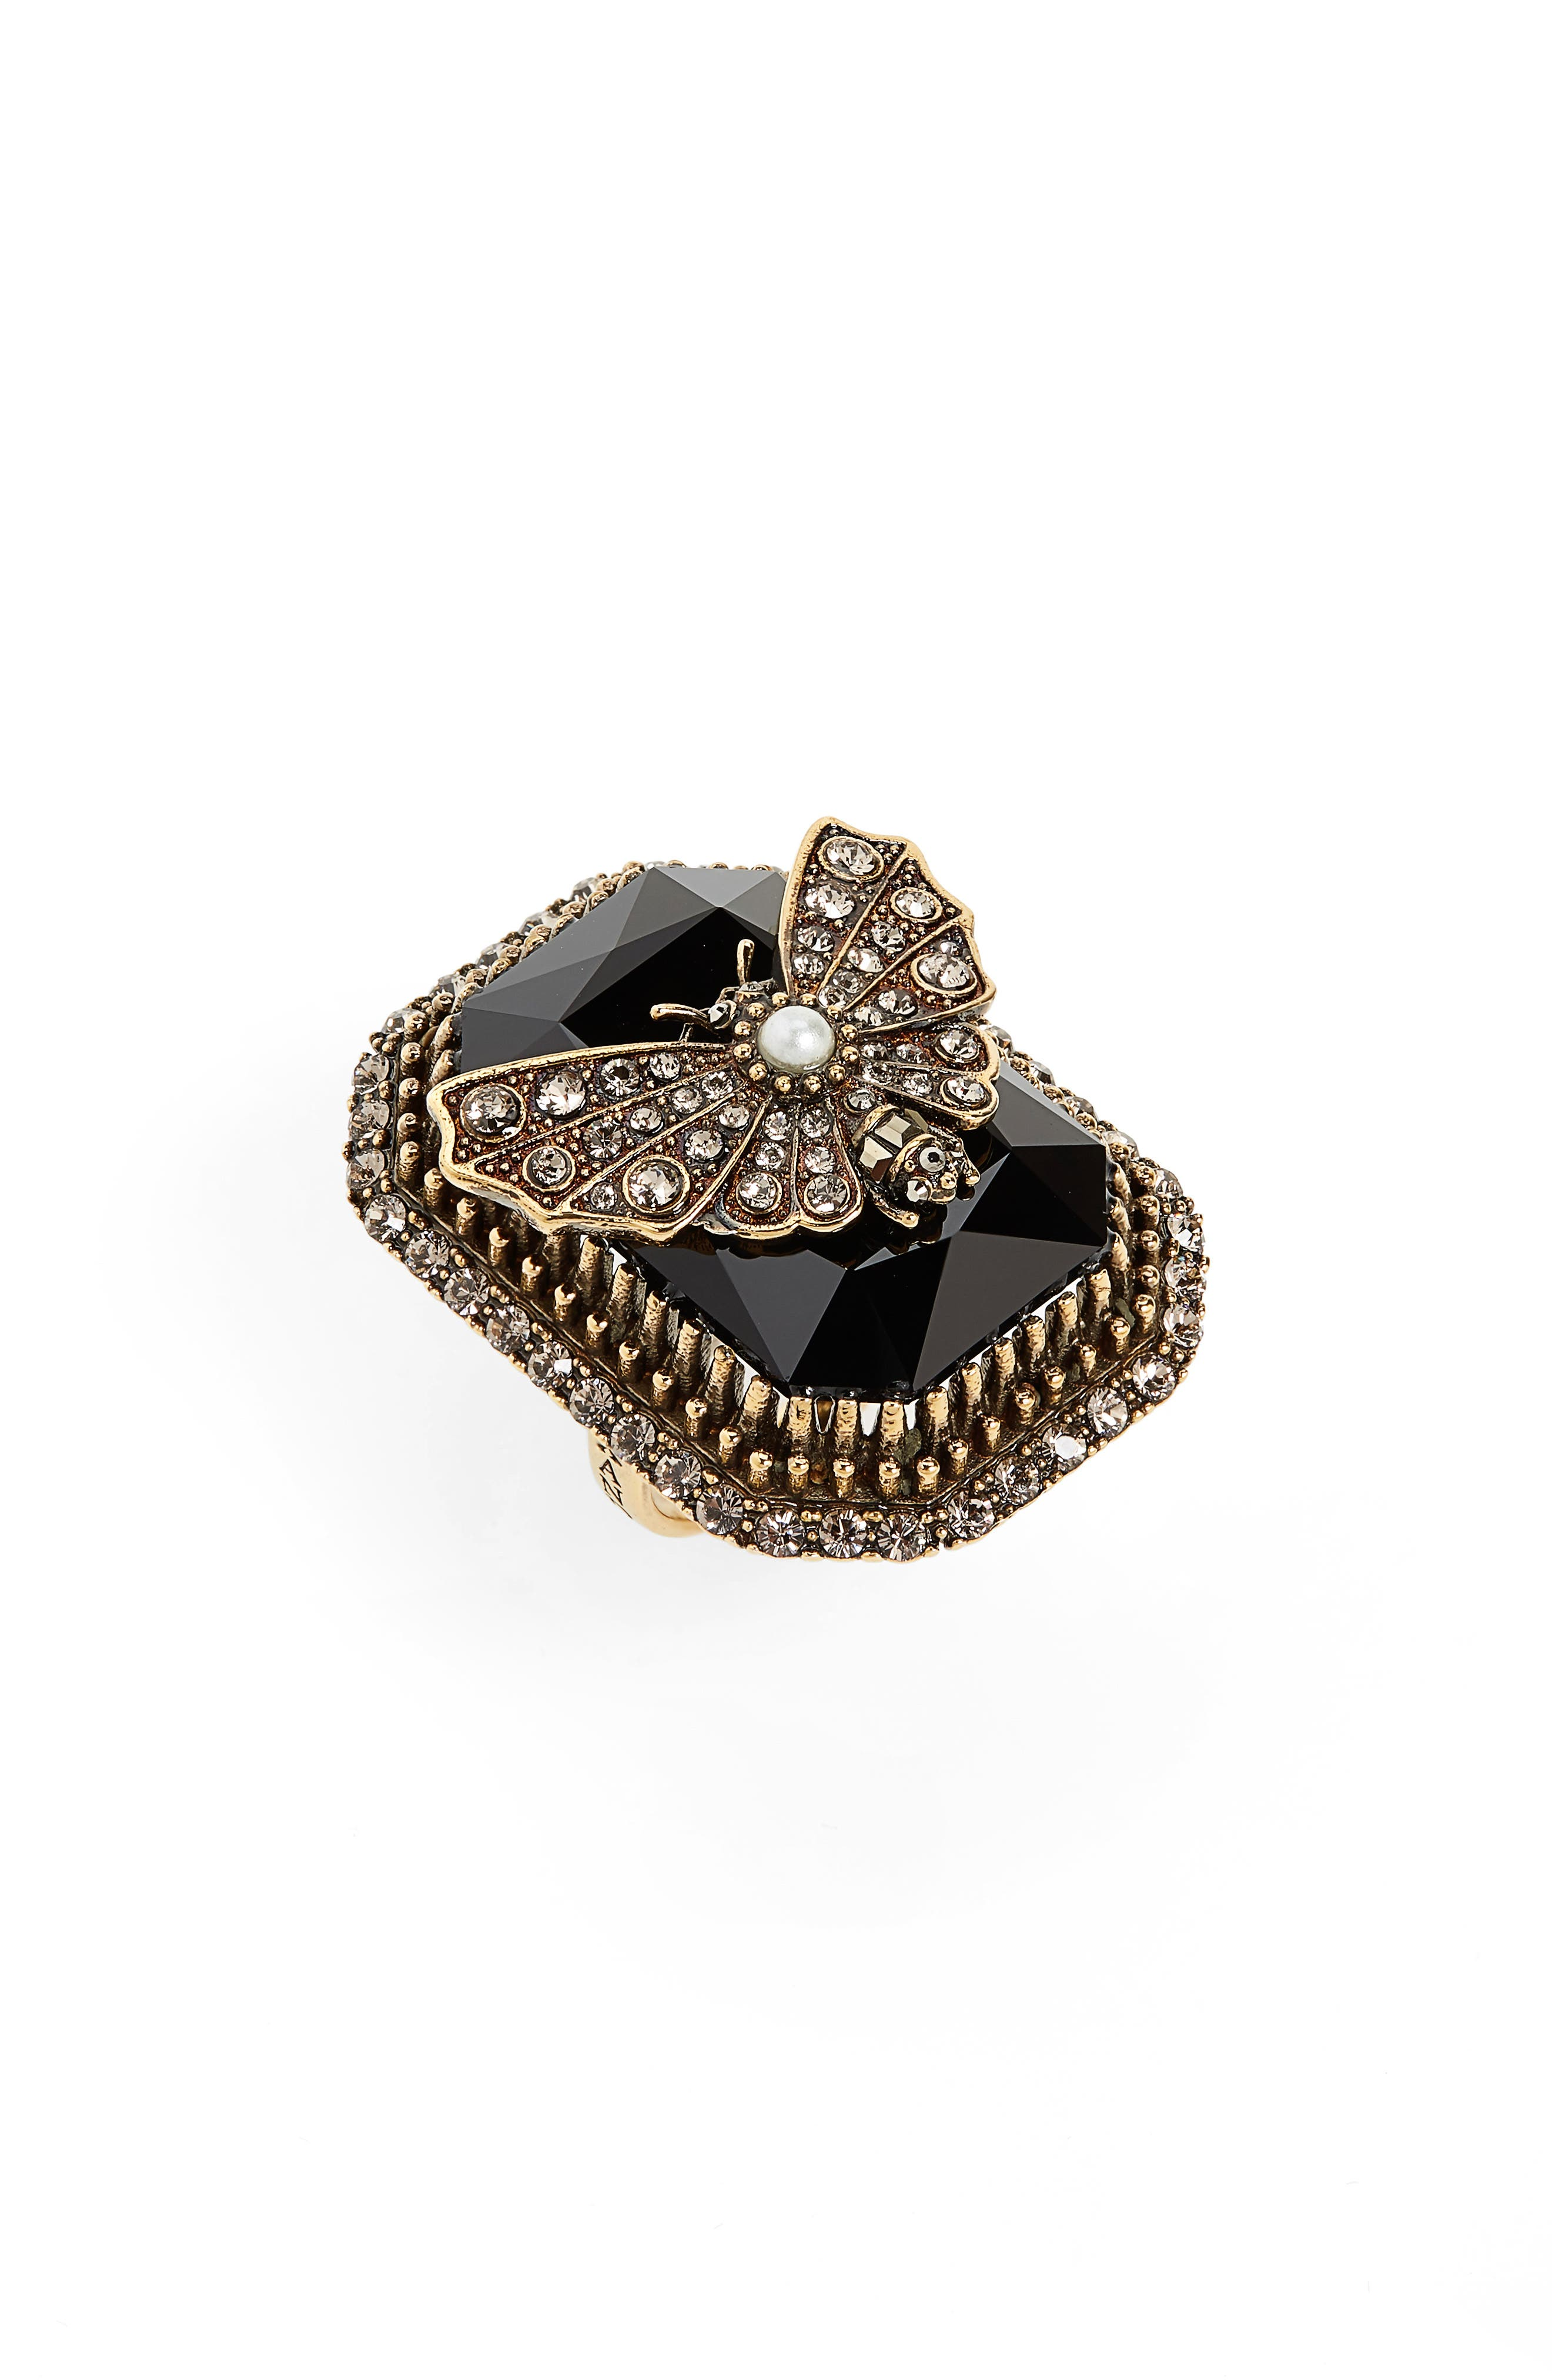 ALEXANDER MCQUEEN Butterfly Cocktail Ring in Gold/ Jet Black